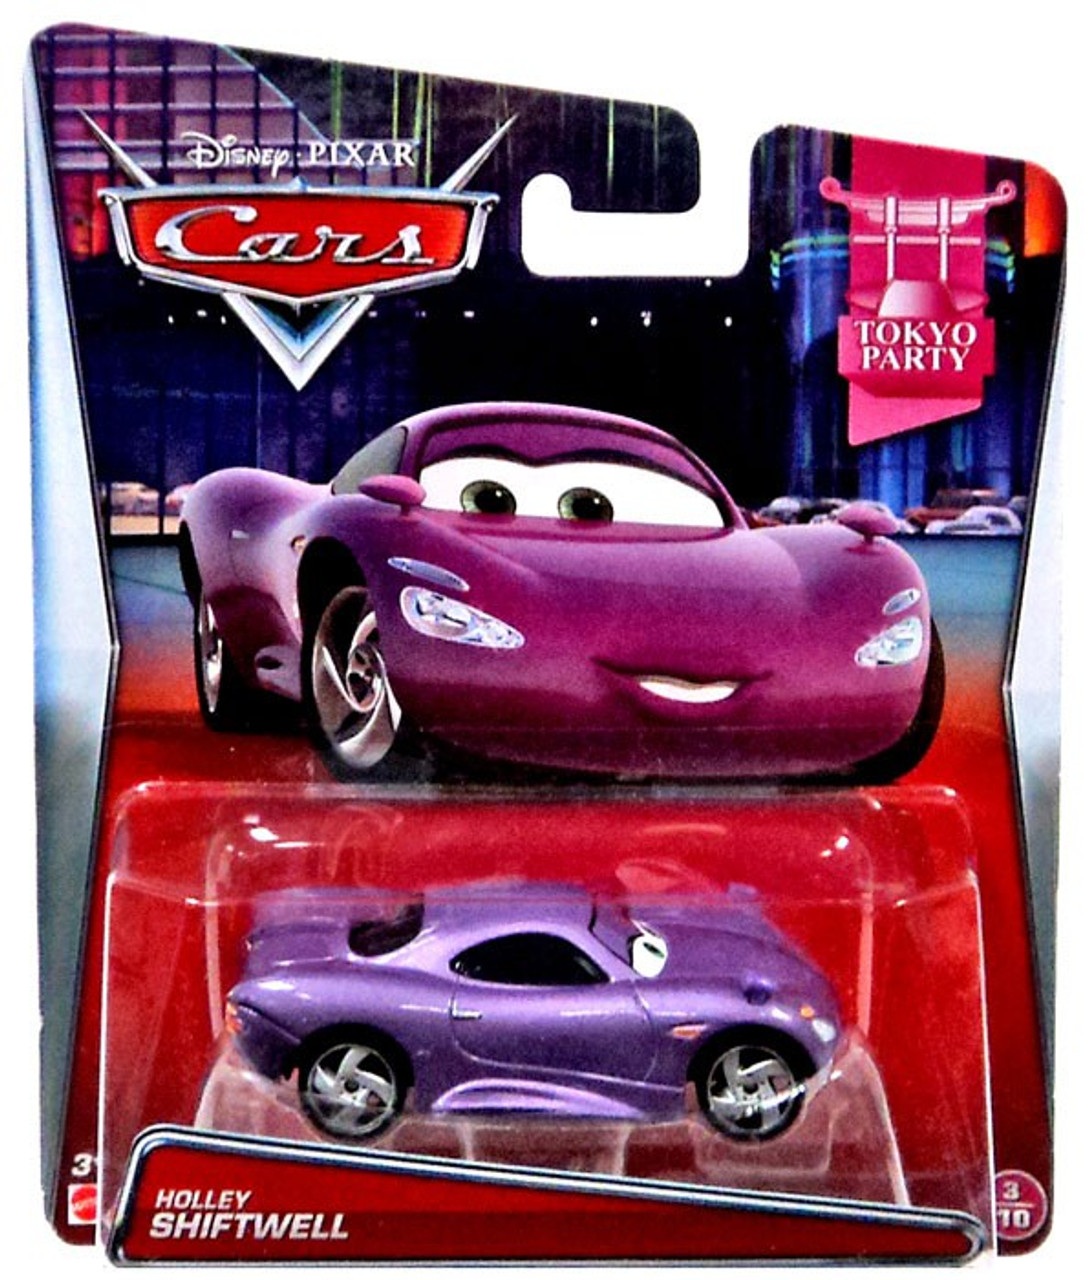 Disney Cars Tokyo Party Holley Shiftwell 155 Diecast Car